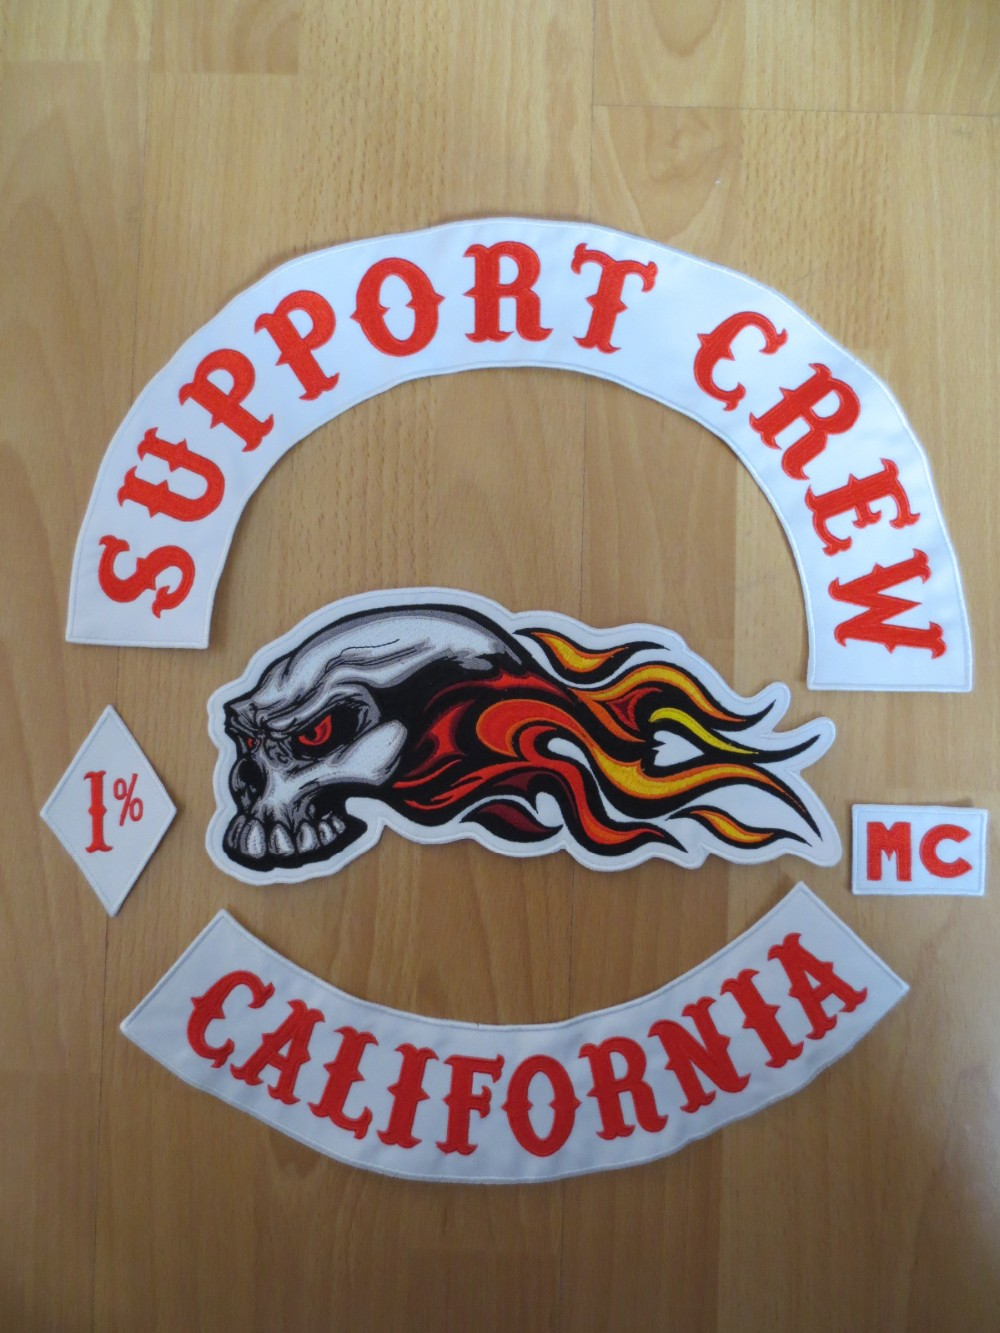 Original Embroidery Patches for Jacket Motorcycle Club Biker MC Red and White SUPPORT CREWOriginal Embroidery Patches for Jacket Motorcycle Club Biker MC Red and White SUPPORT CREW